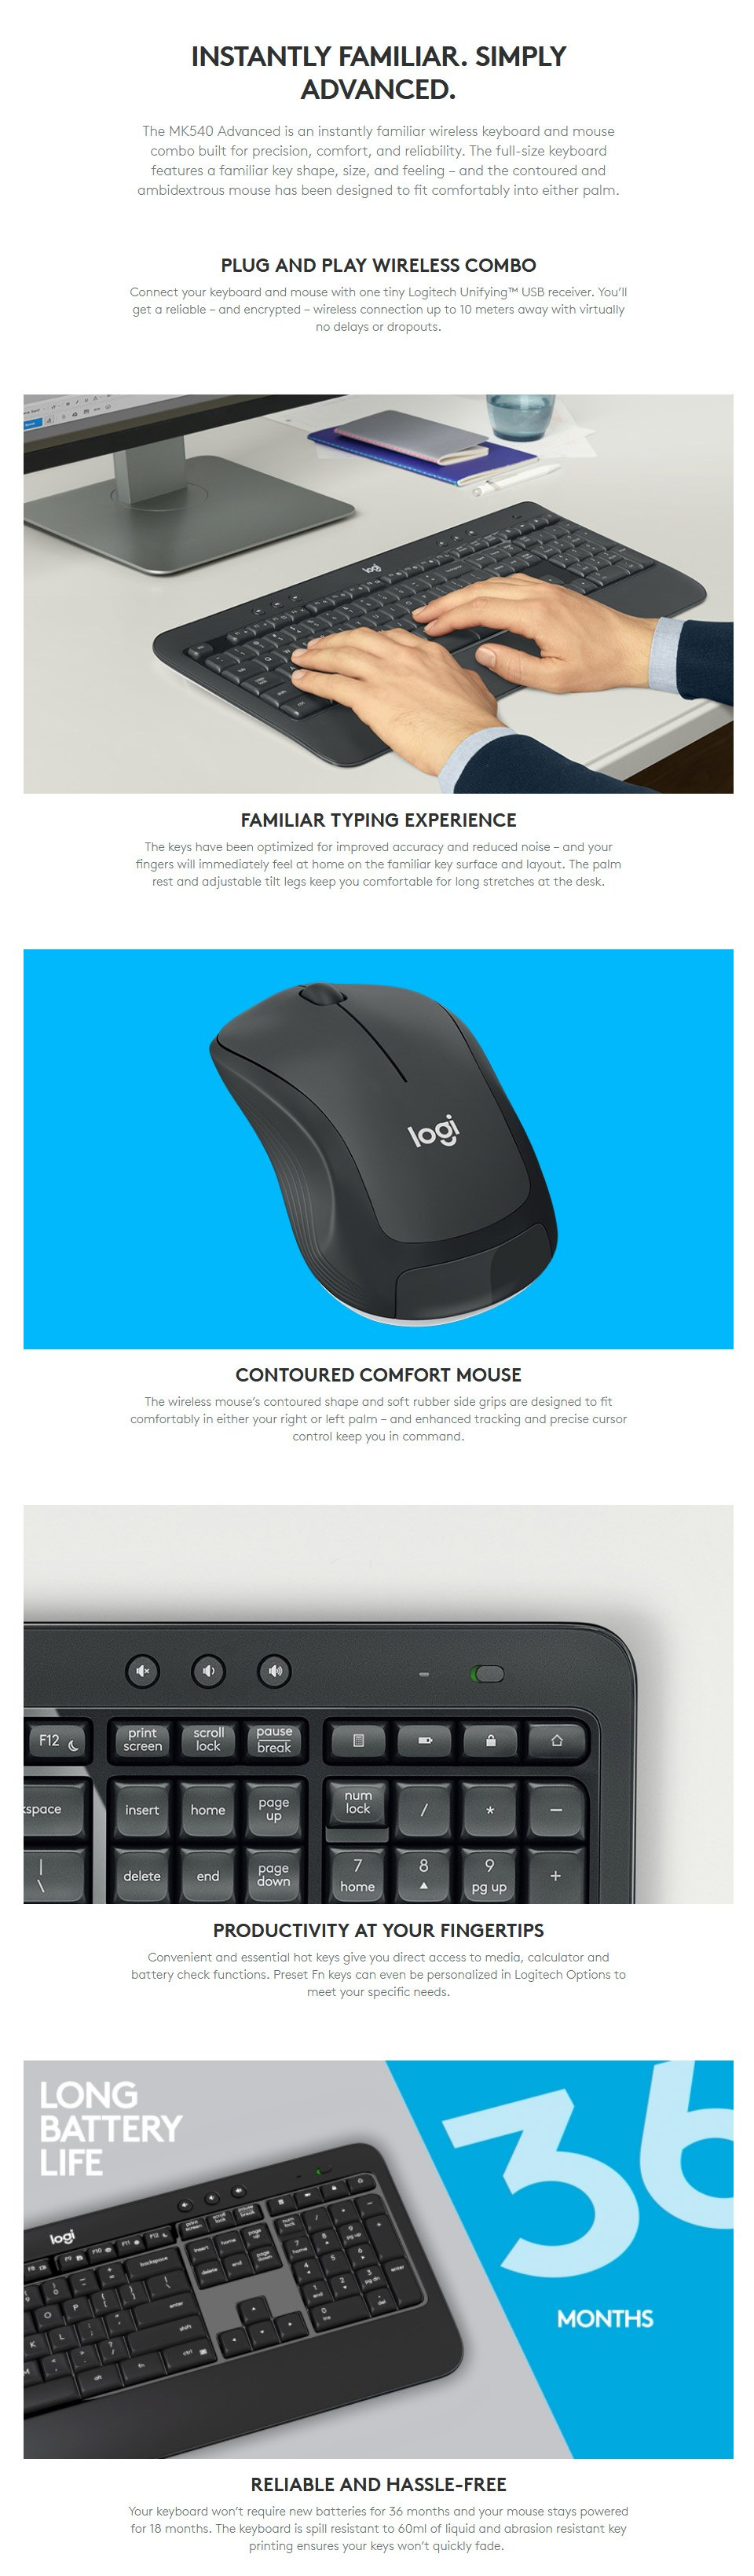 Logitech MK540 Advanced Wireless Keyboard and Mouse Combo features